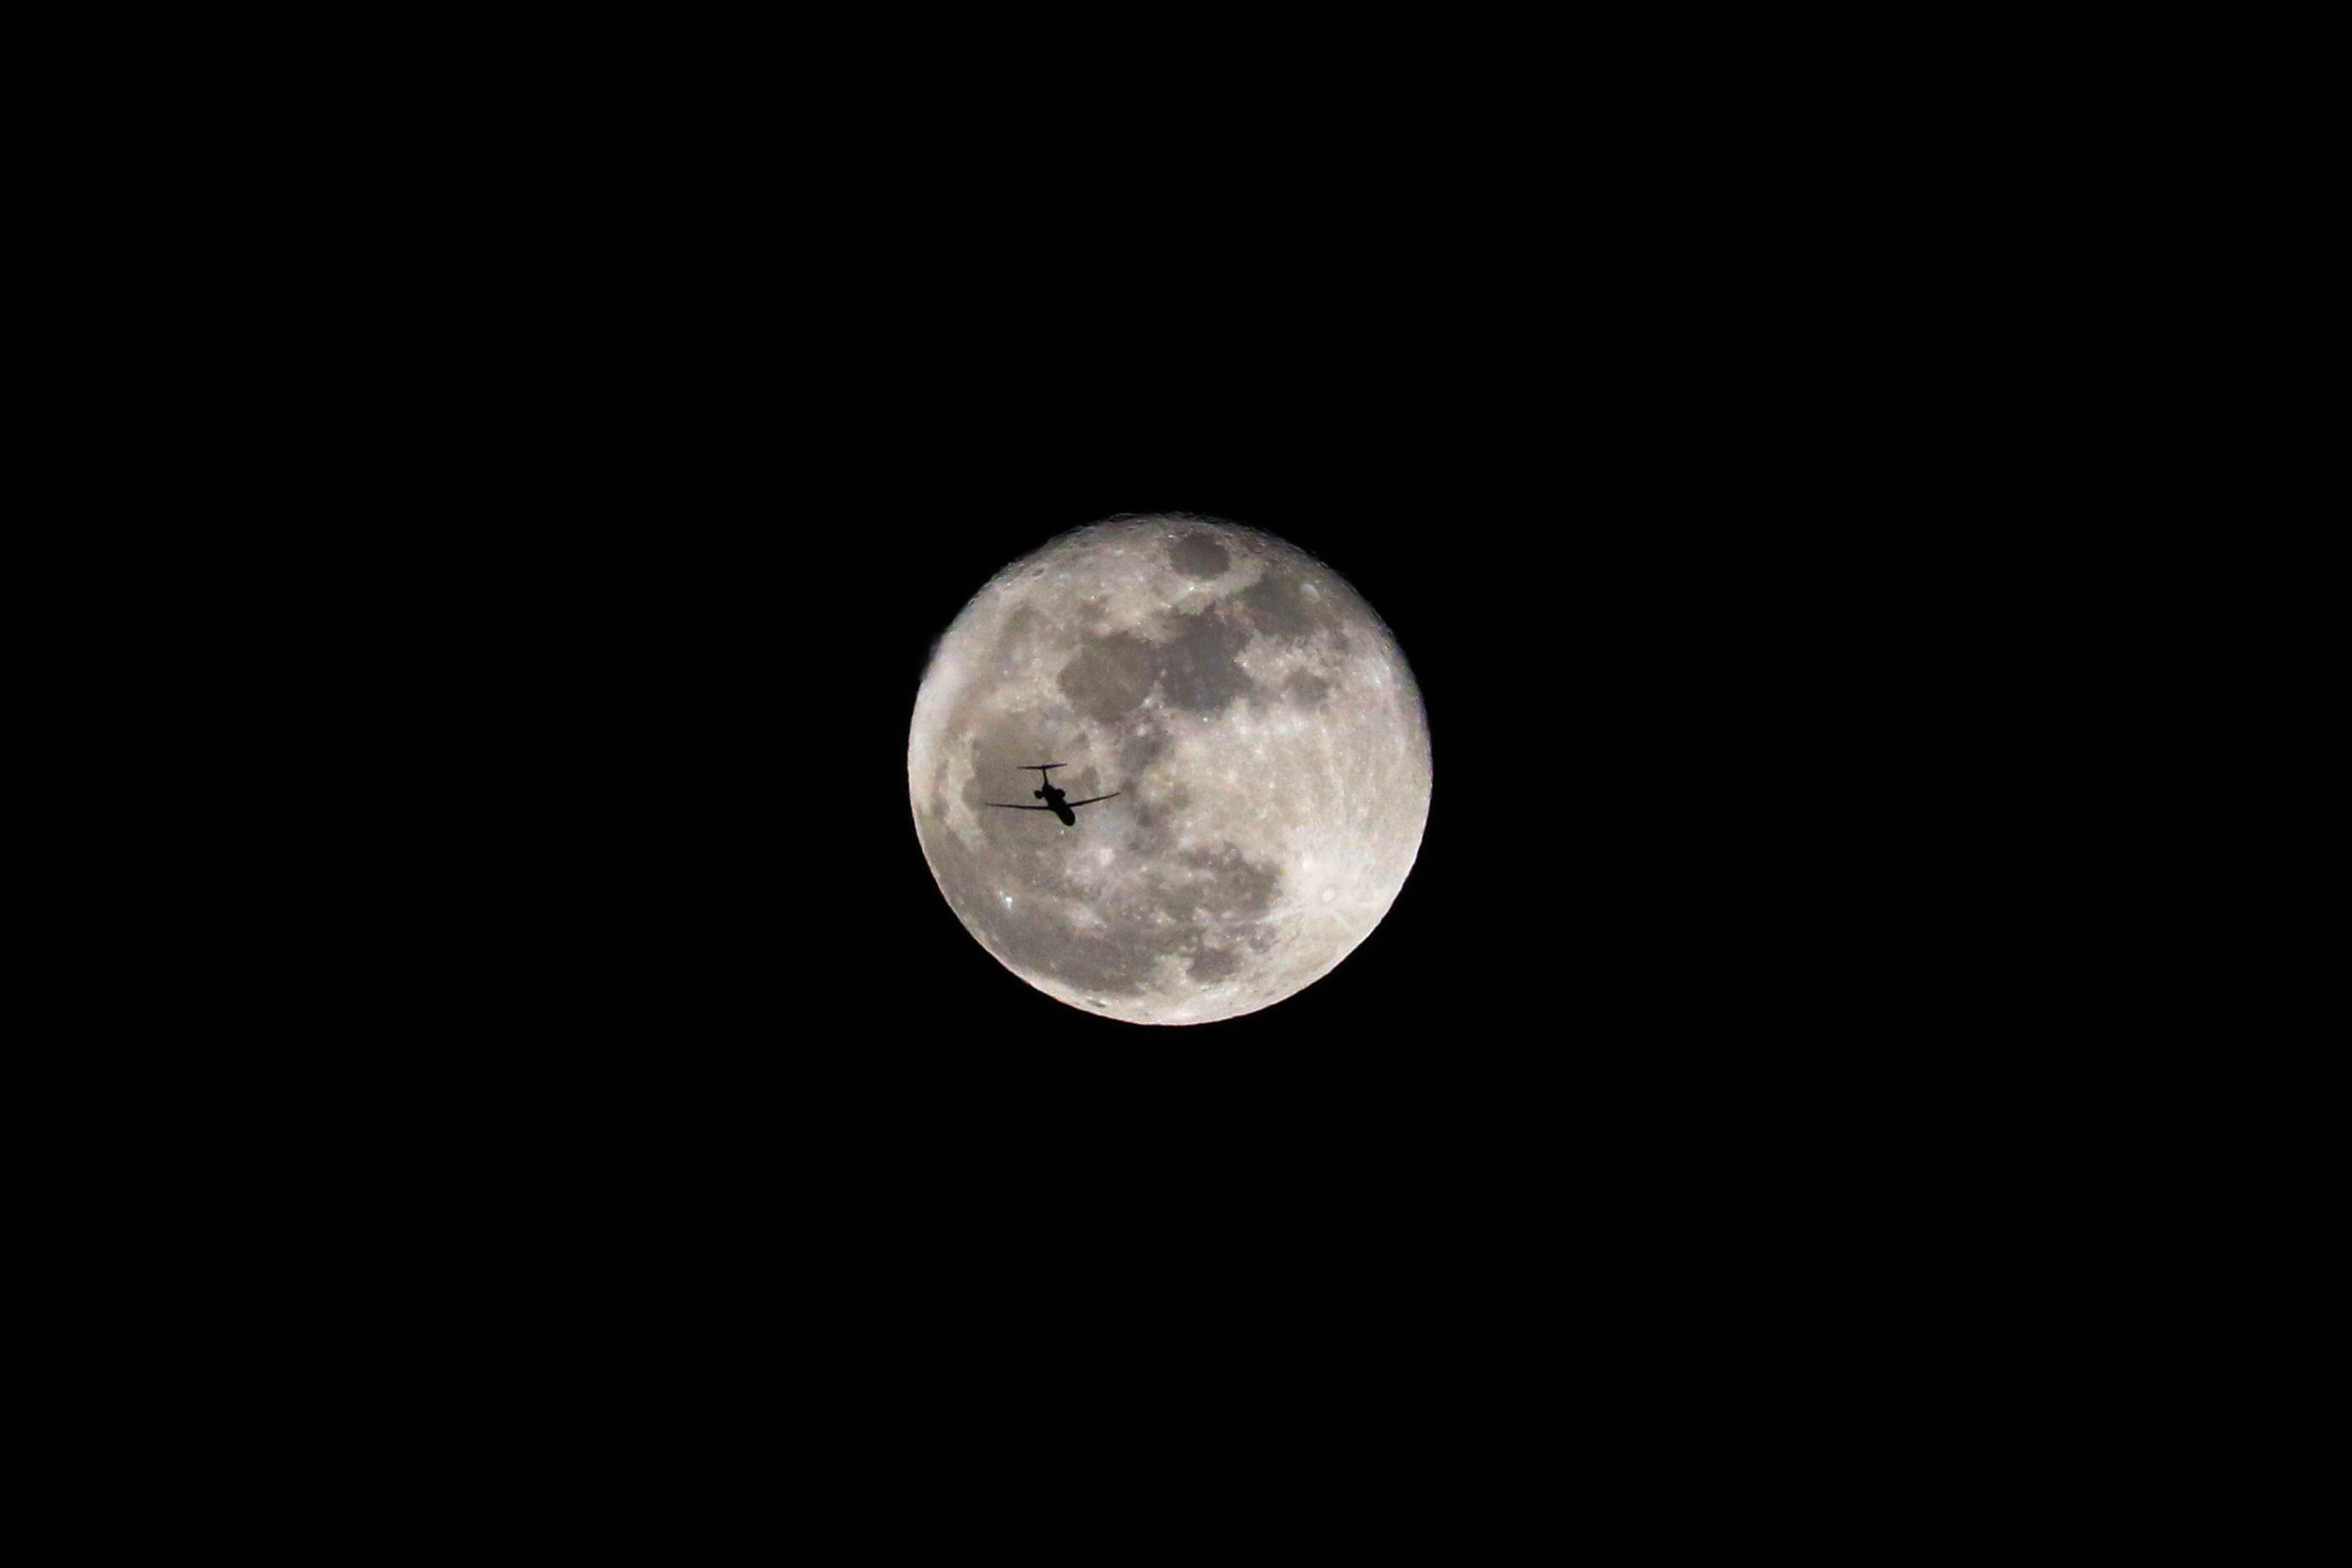 full moon during the night